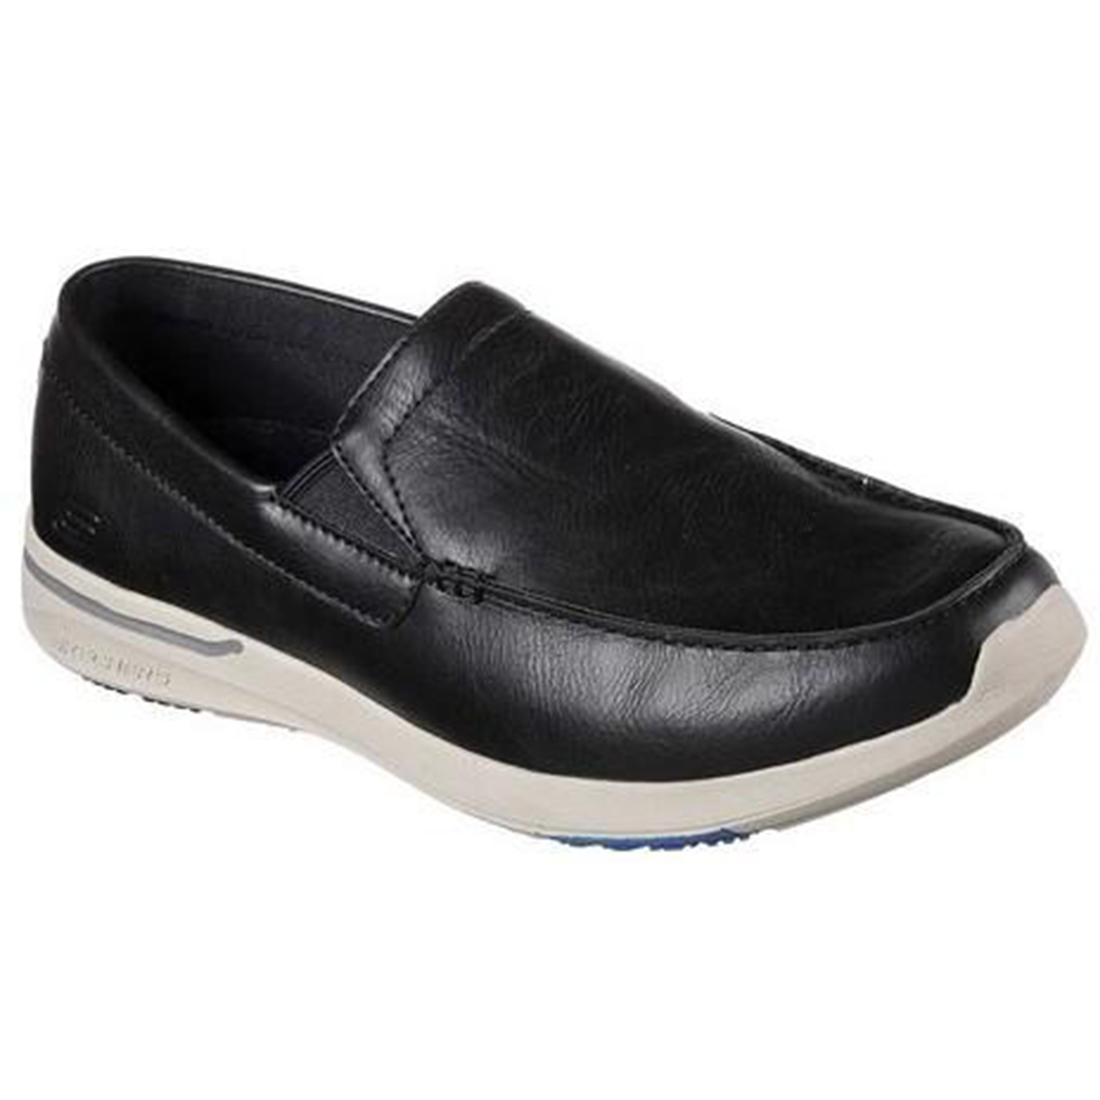 Skechers Mens Elent Vensen Economical, stylish, and eye-catching shoes